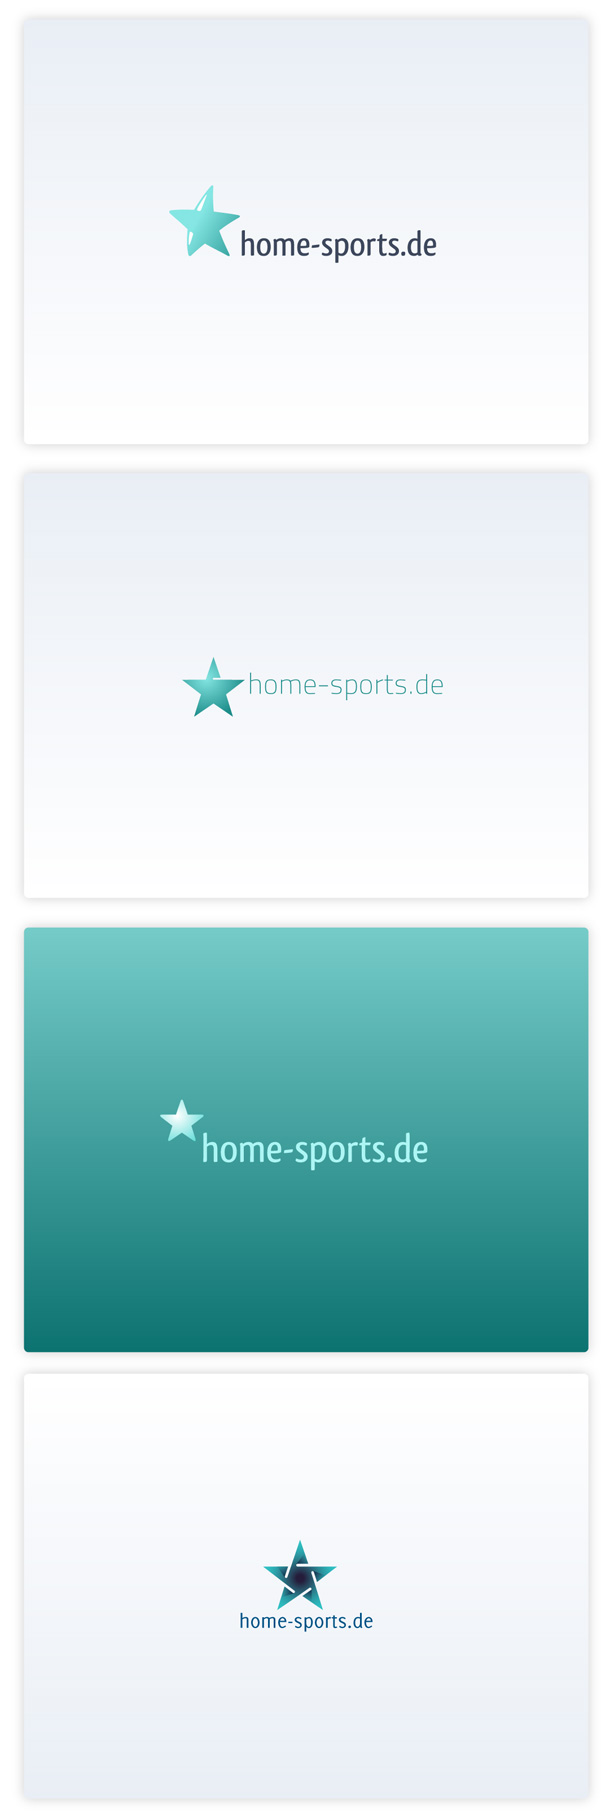 Home-Sports.de, other logo versions.